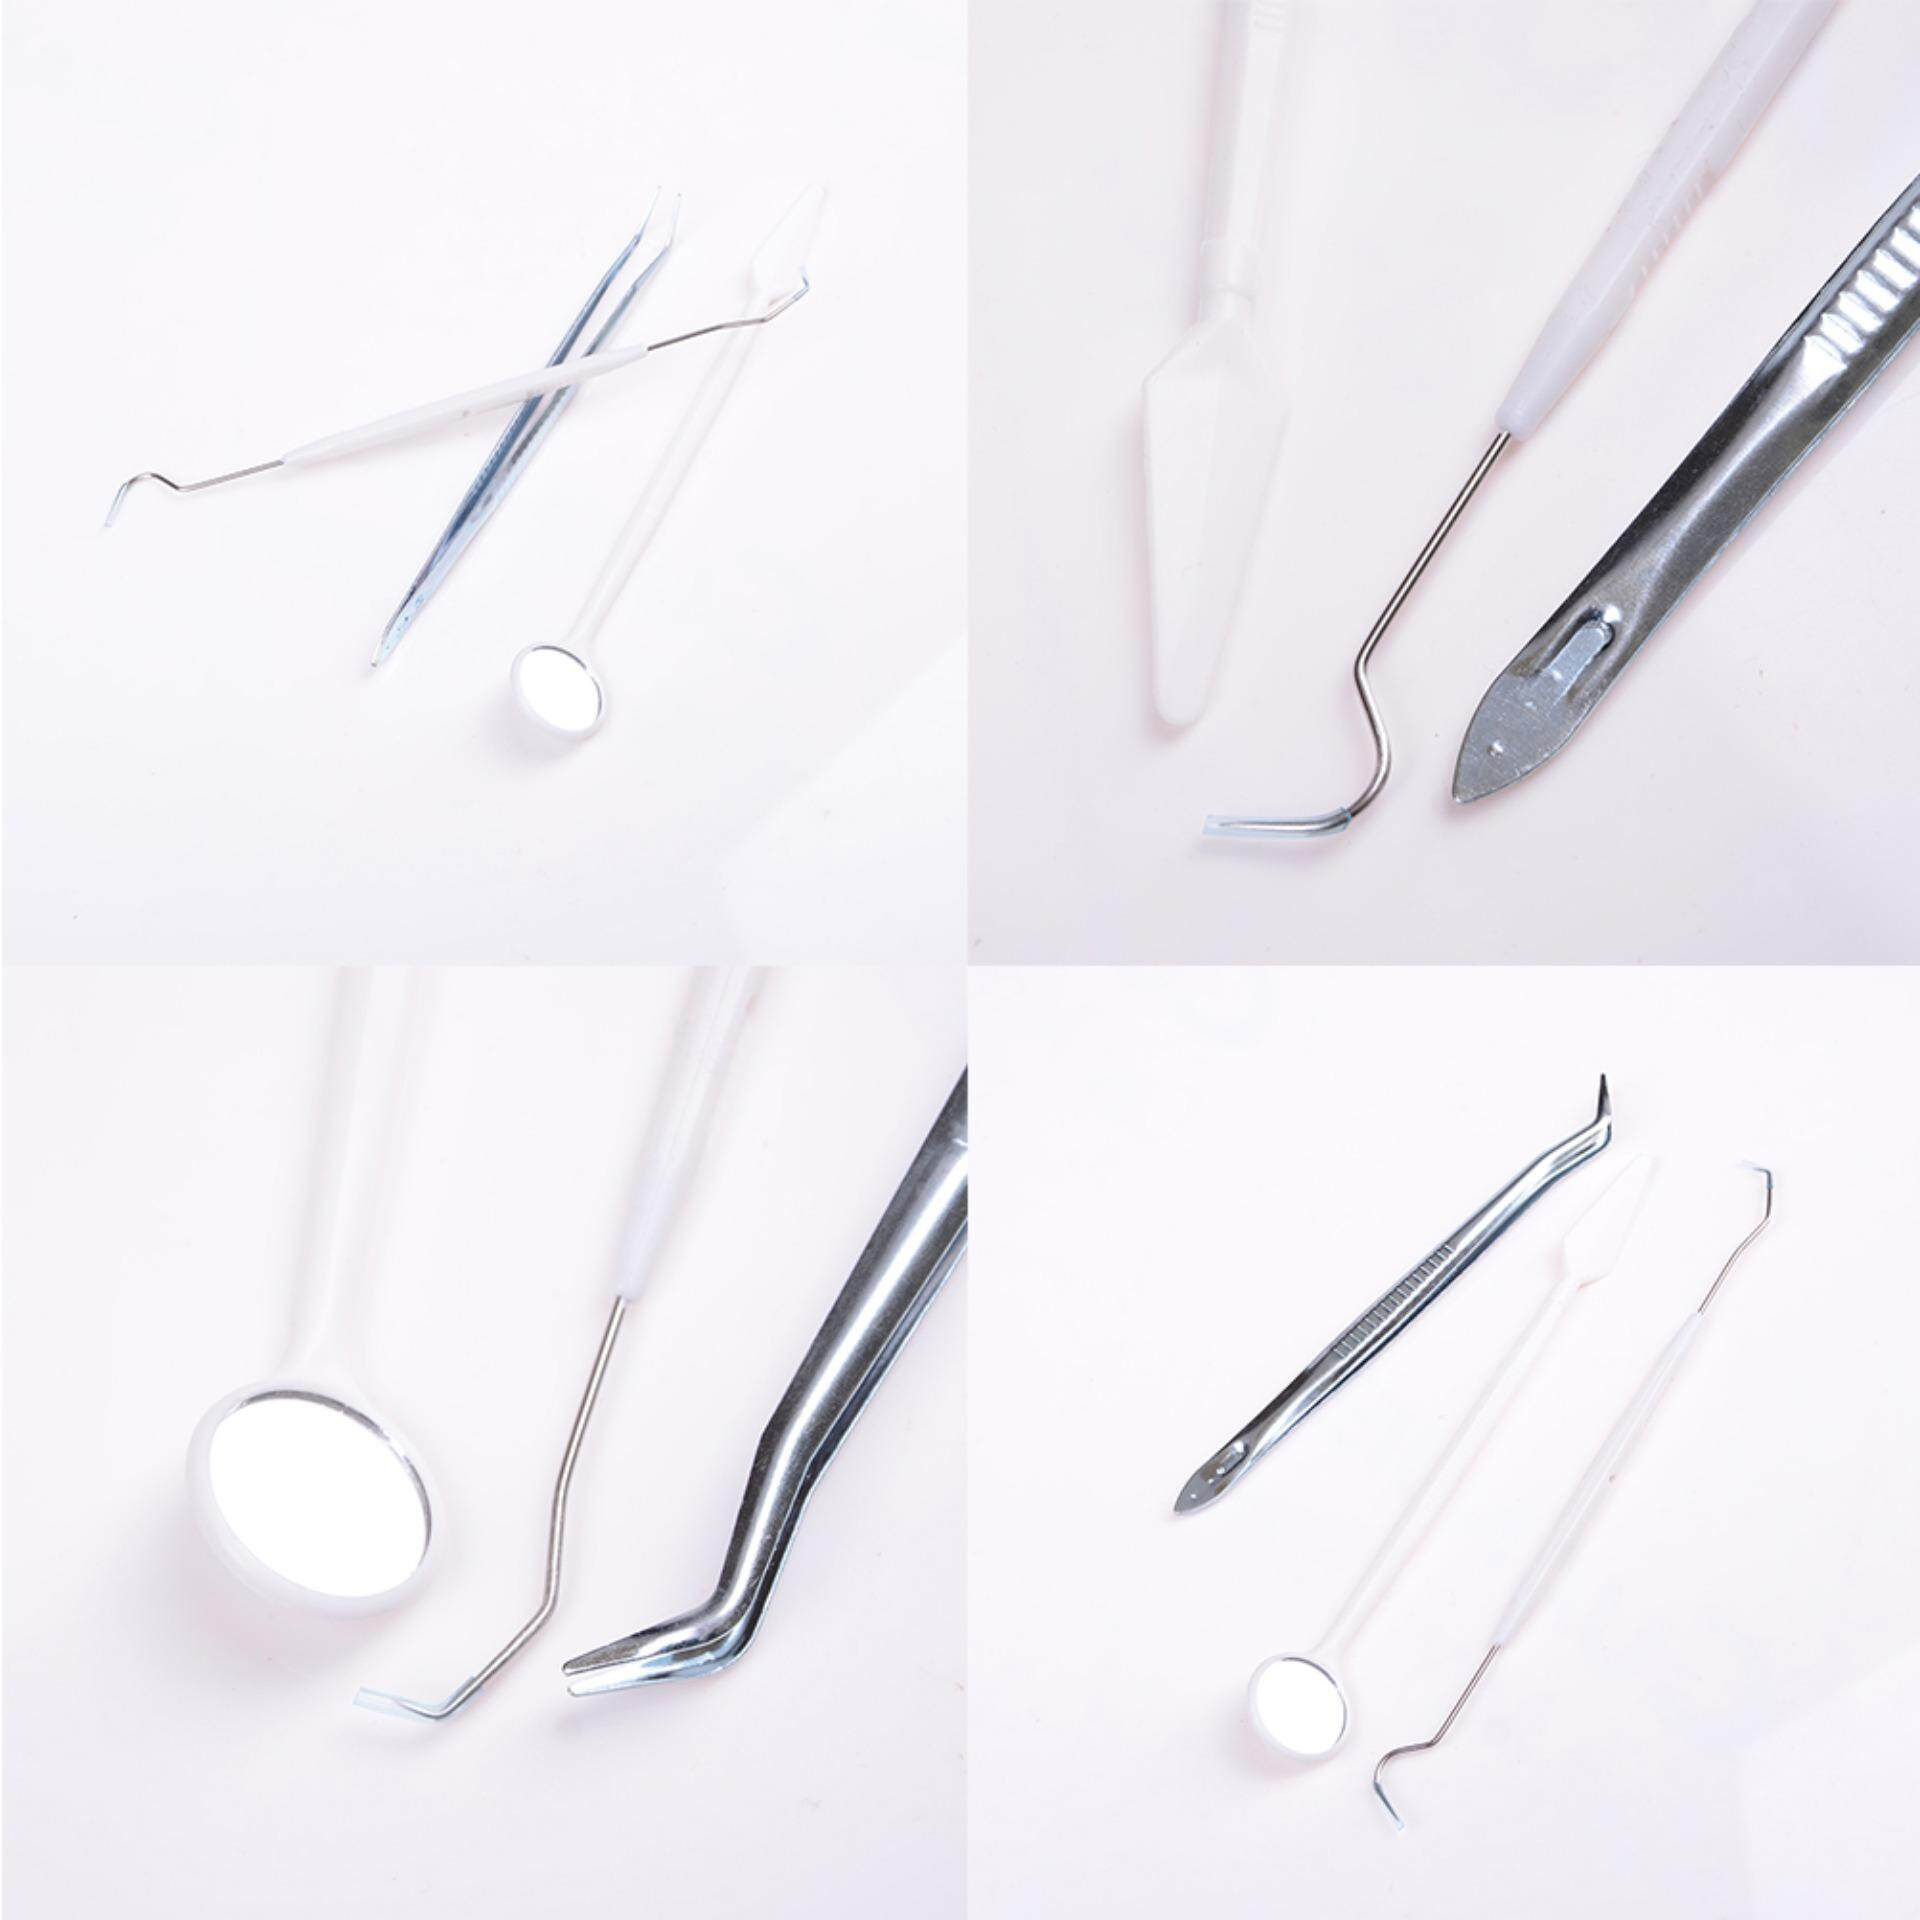 Dental Instruments Mouth Mirror Probe Tweezers Teeth Tooth Clean Hygiene Kit By Variety Grace.